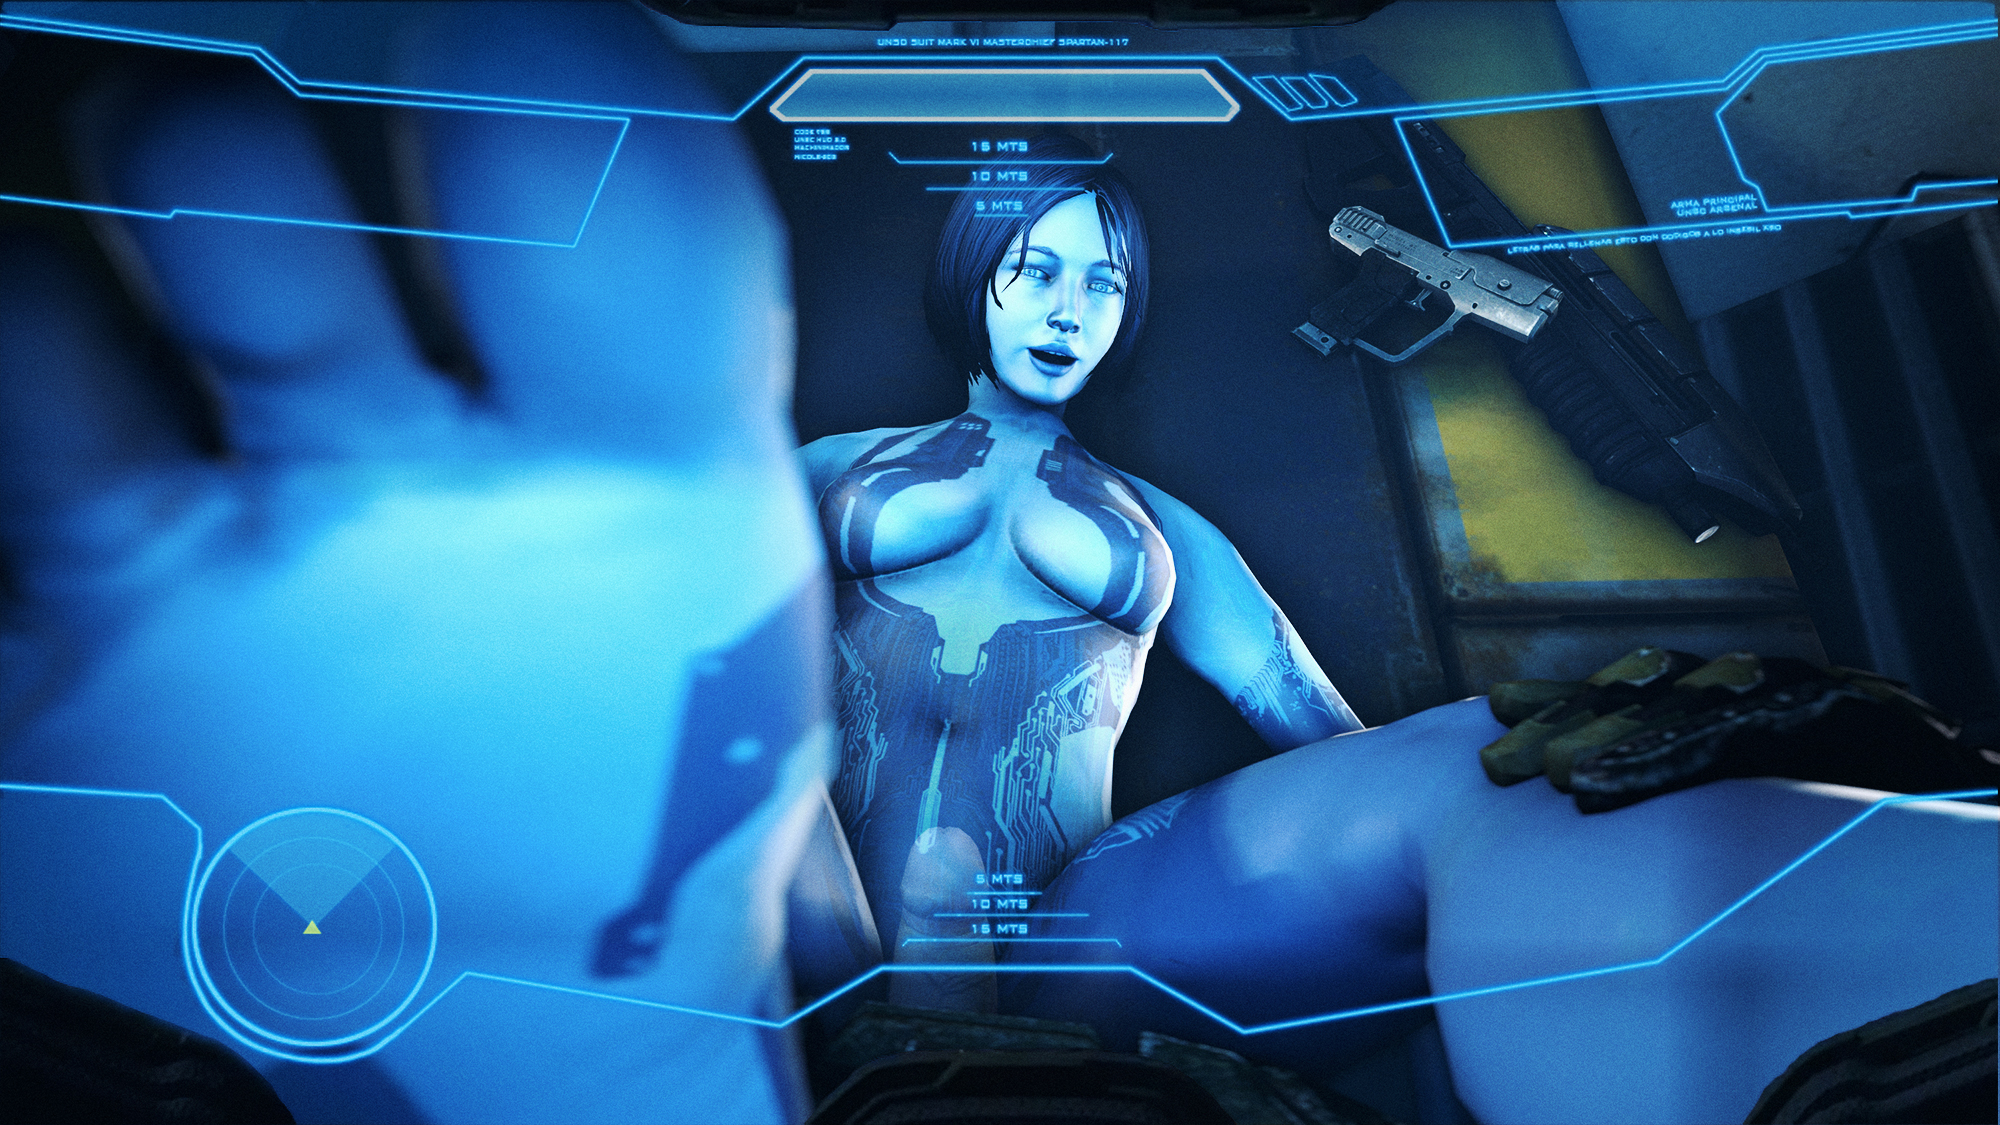 Cortana from halo 4 sex erotic photo